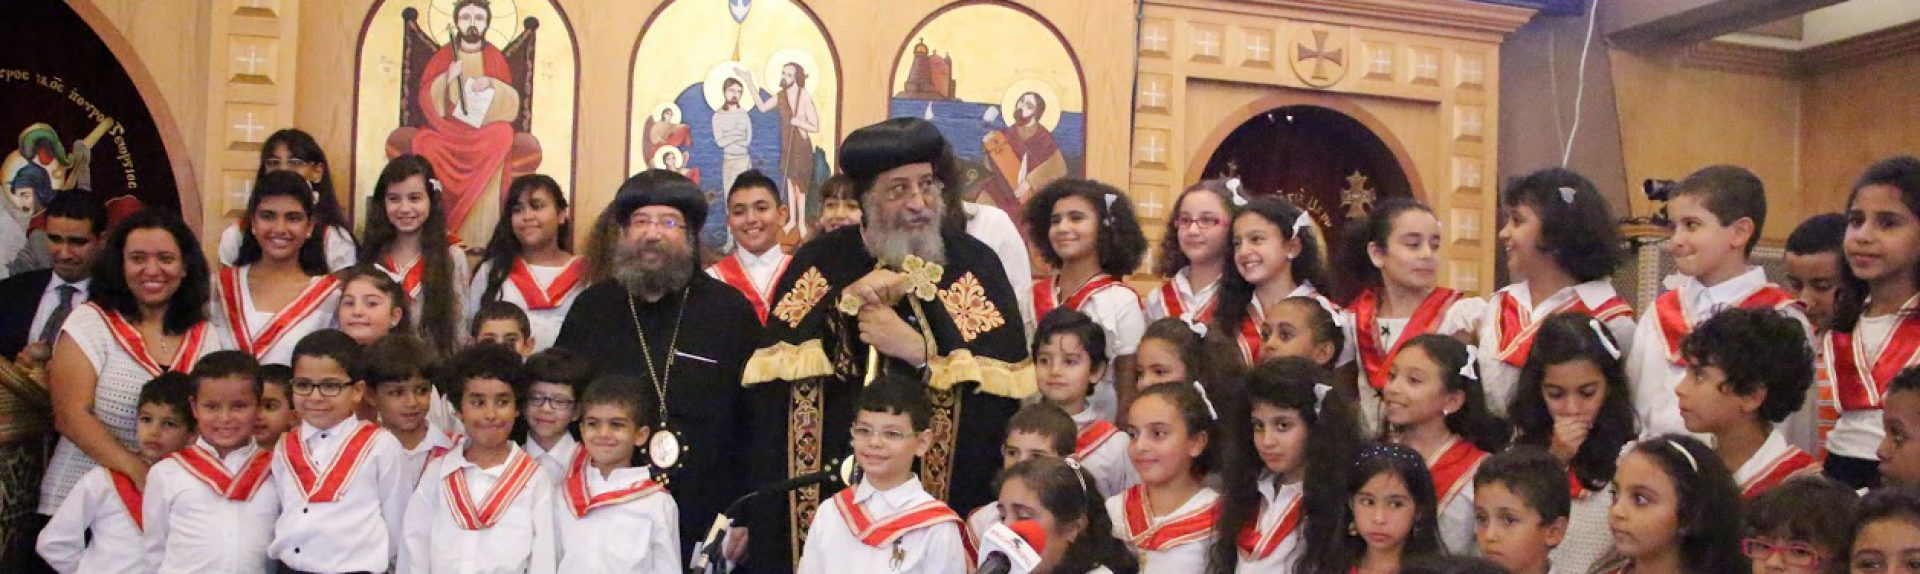 St. George Coptic Orthodox Church